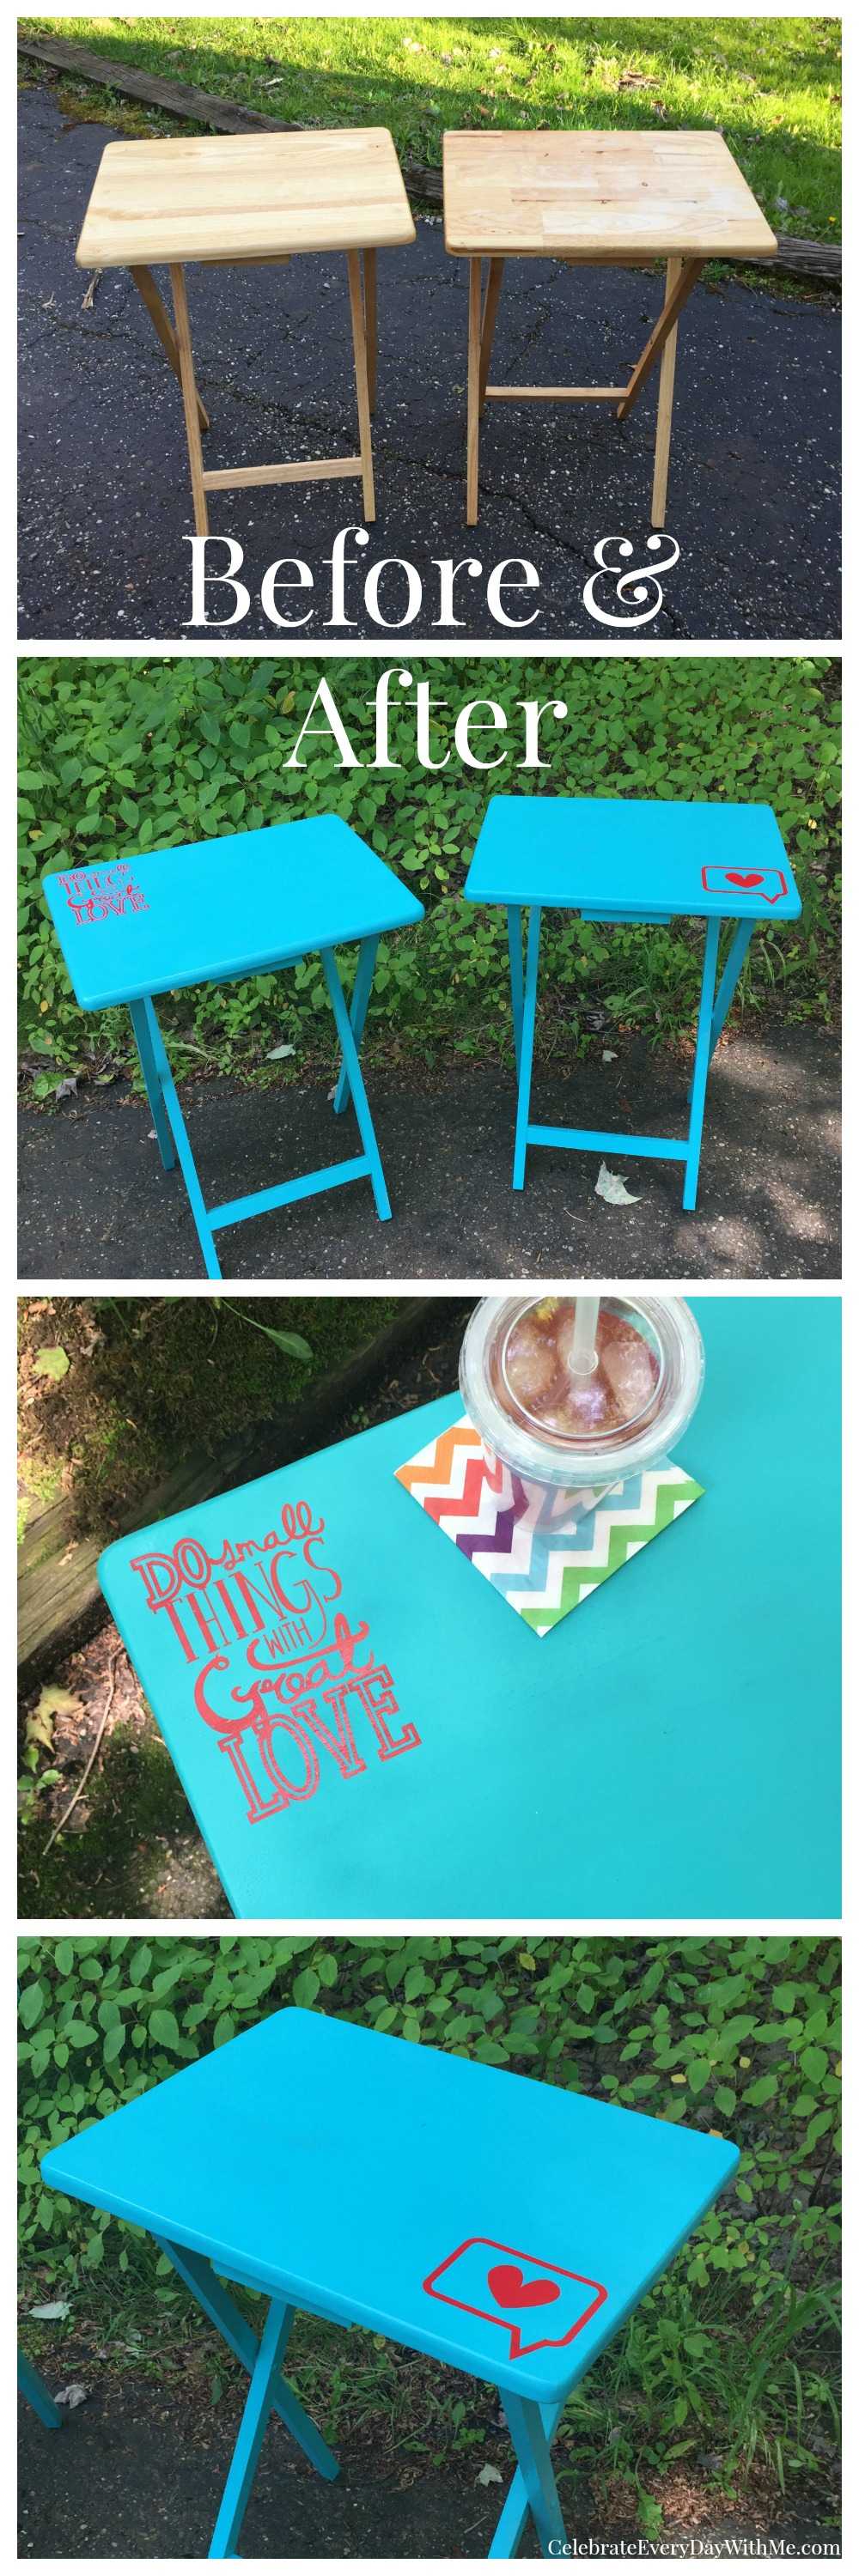 Great Garage Sale Finds Tv Tray Makeover Celebrate Every Day With Me